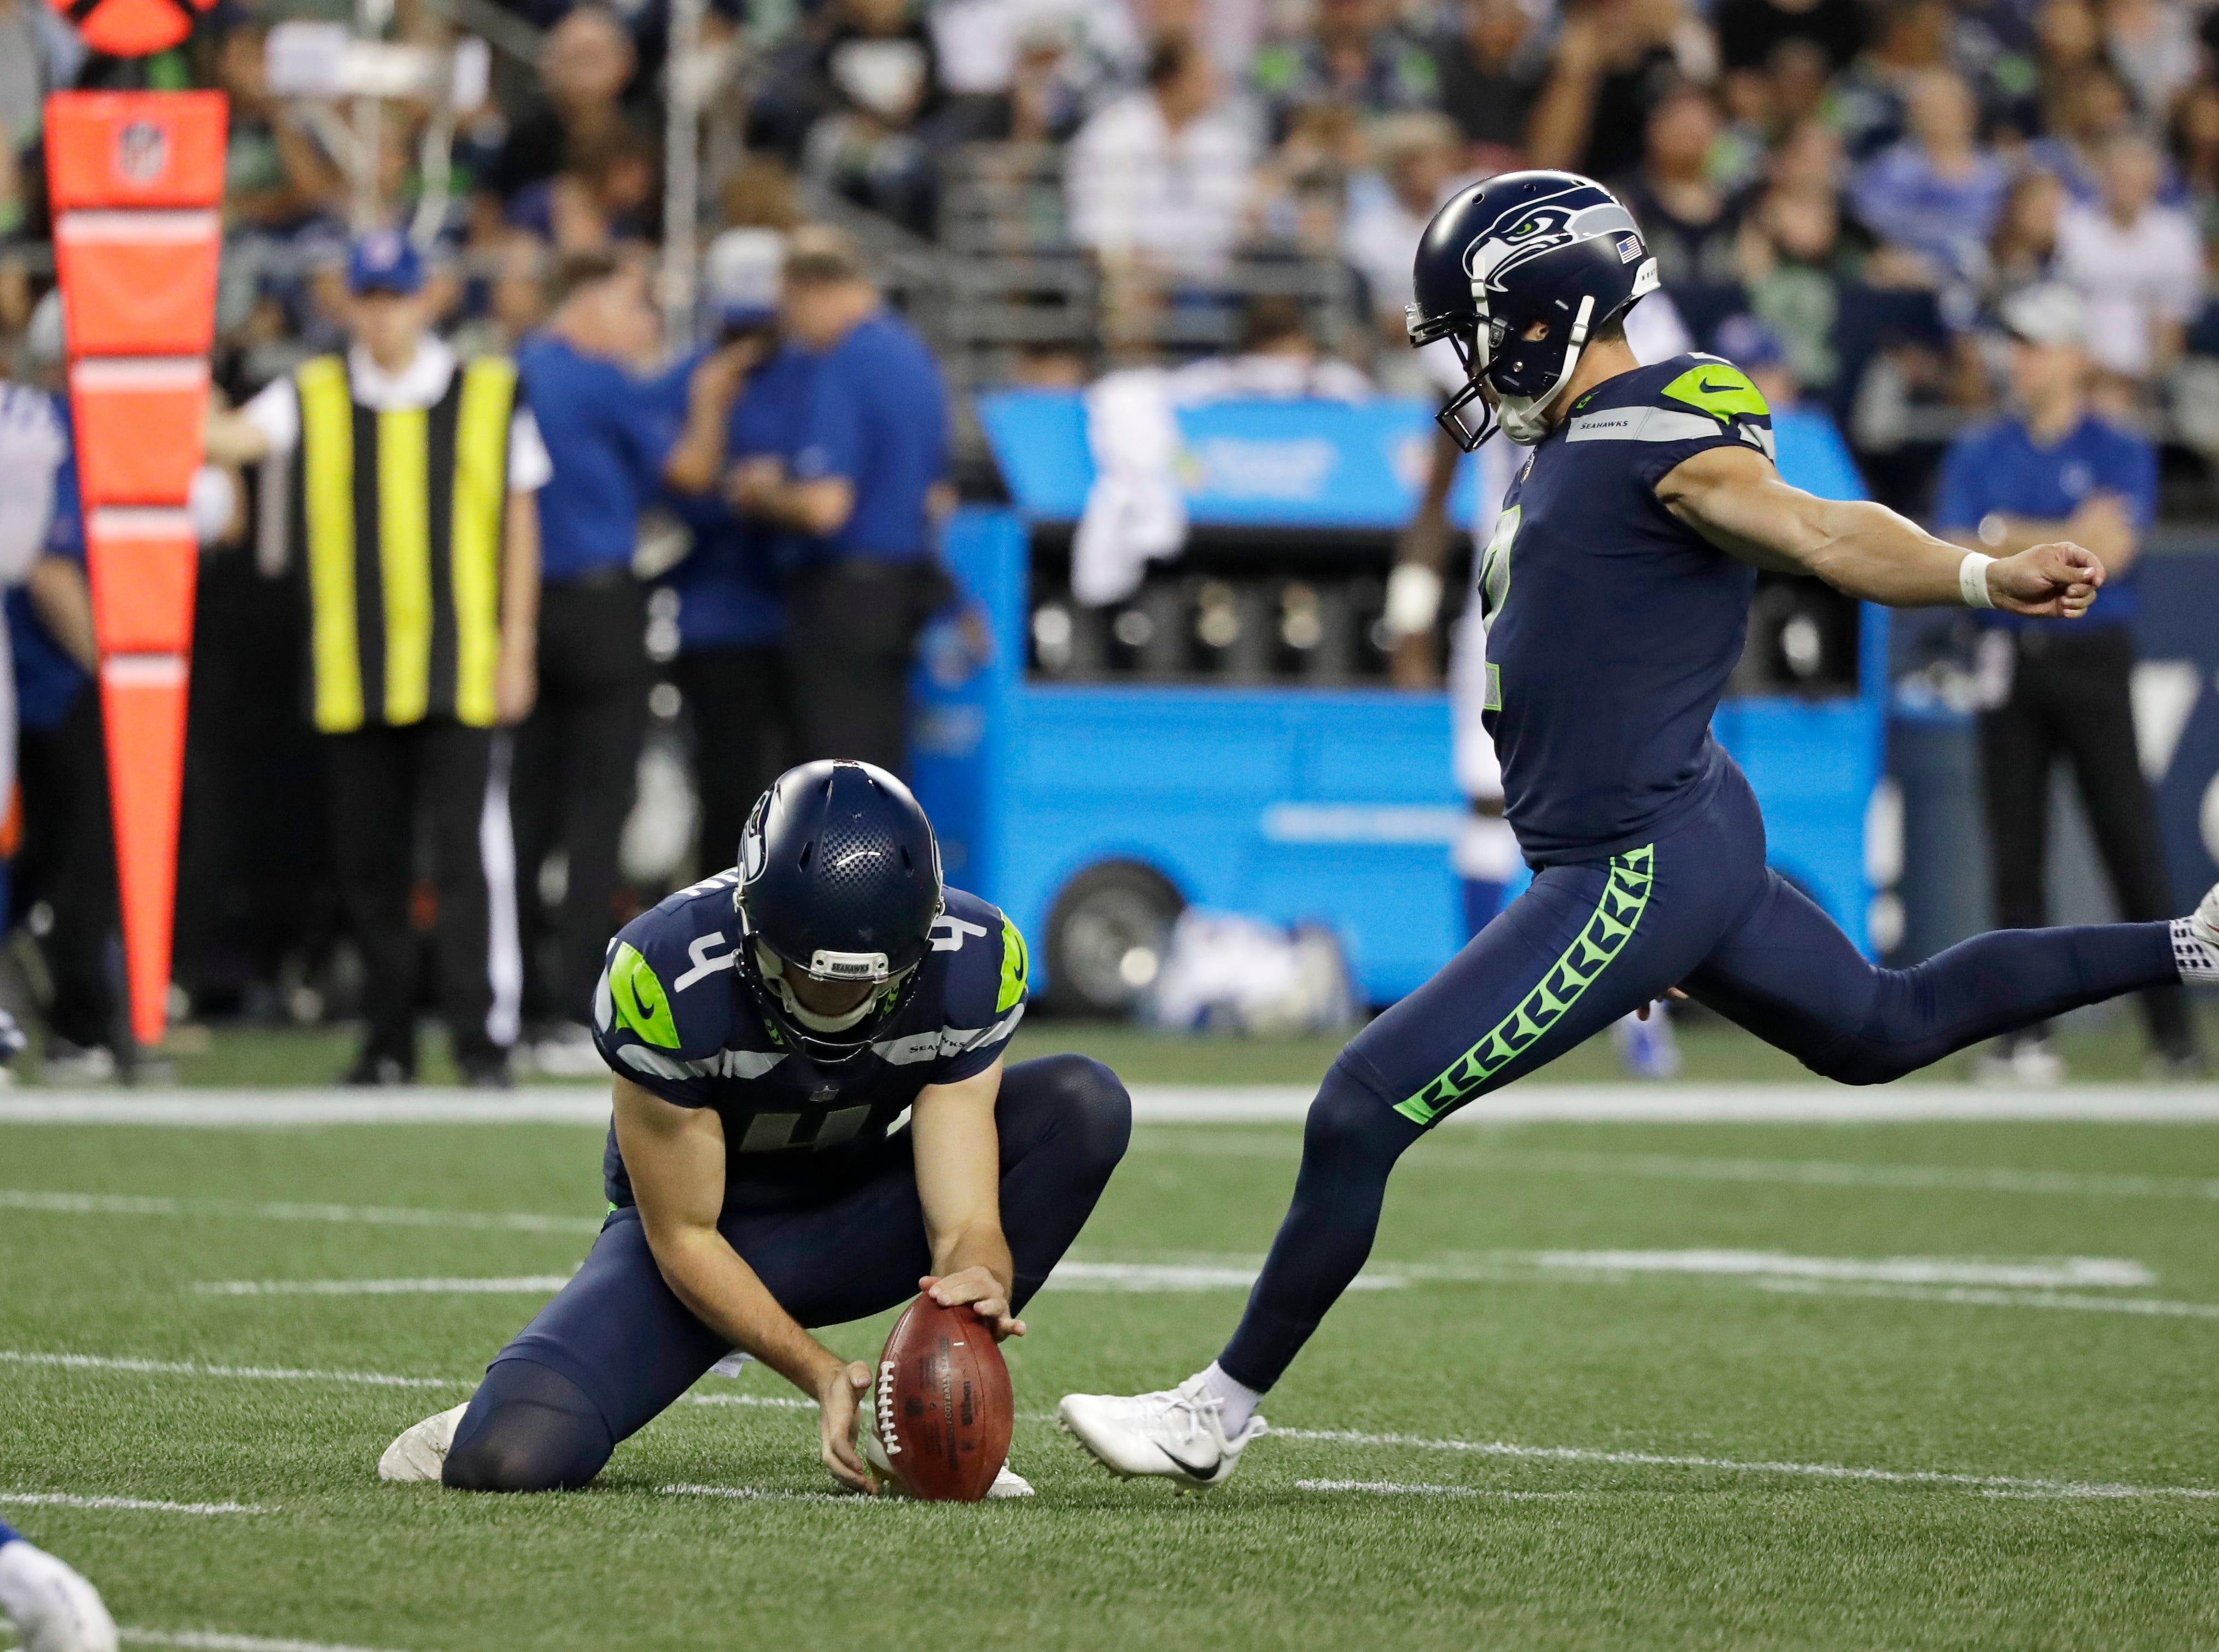 Seattle Seahawks' Jason Myers (2) kicks a field goal as punter Michael Dickson (4) holds during the second half of an NFL football preseason game against the Indianapolis Colts, Thursday, Aug. 9, 2018, in Seattle. (AP Photo/Elaine Thompson)